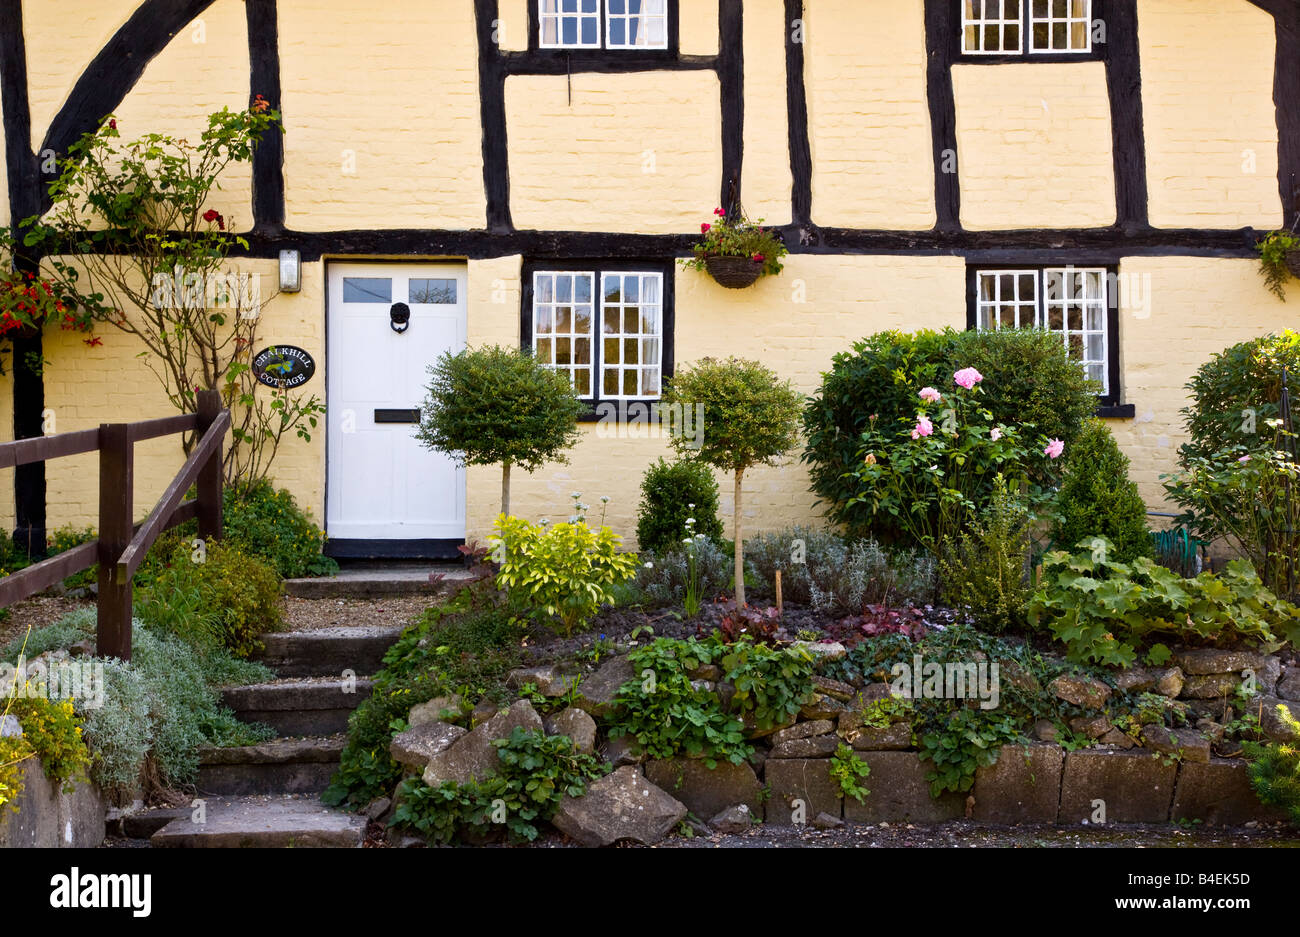 Front view close-up of a typical English timber framed whitewashed Tudor rural country cottage in All Cannings, - Stock Image